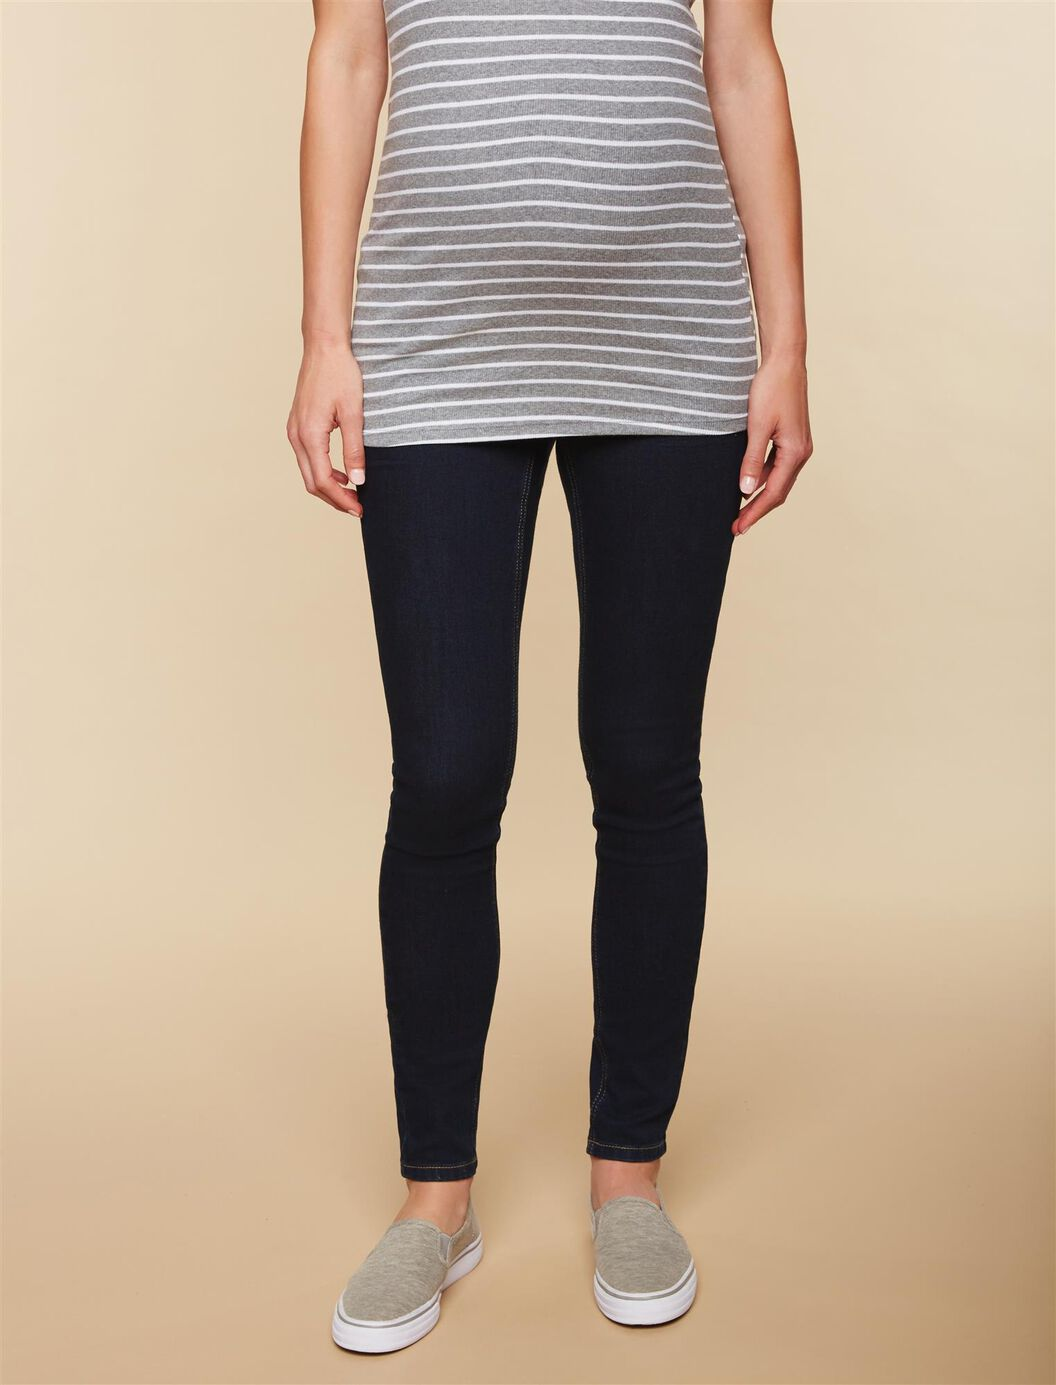 Secret Fit Belly Stretch Skinny Maternity Jeans at Motherhood Maternity in Victor, NY | Tuggl